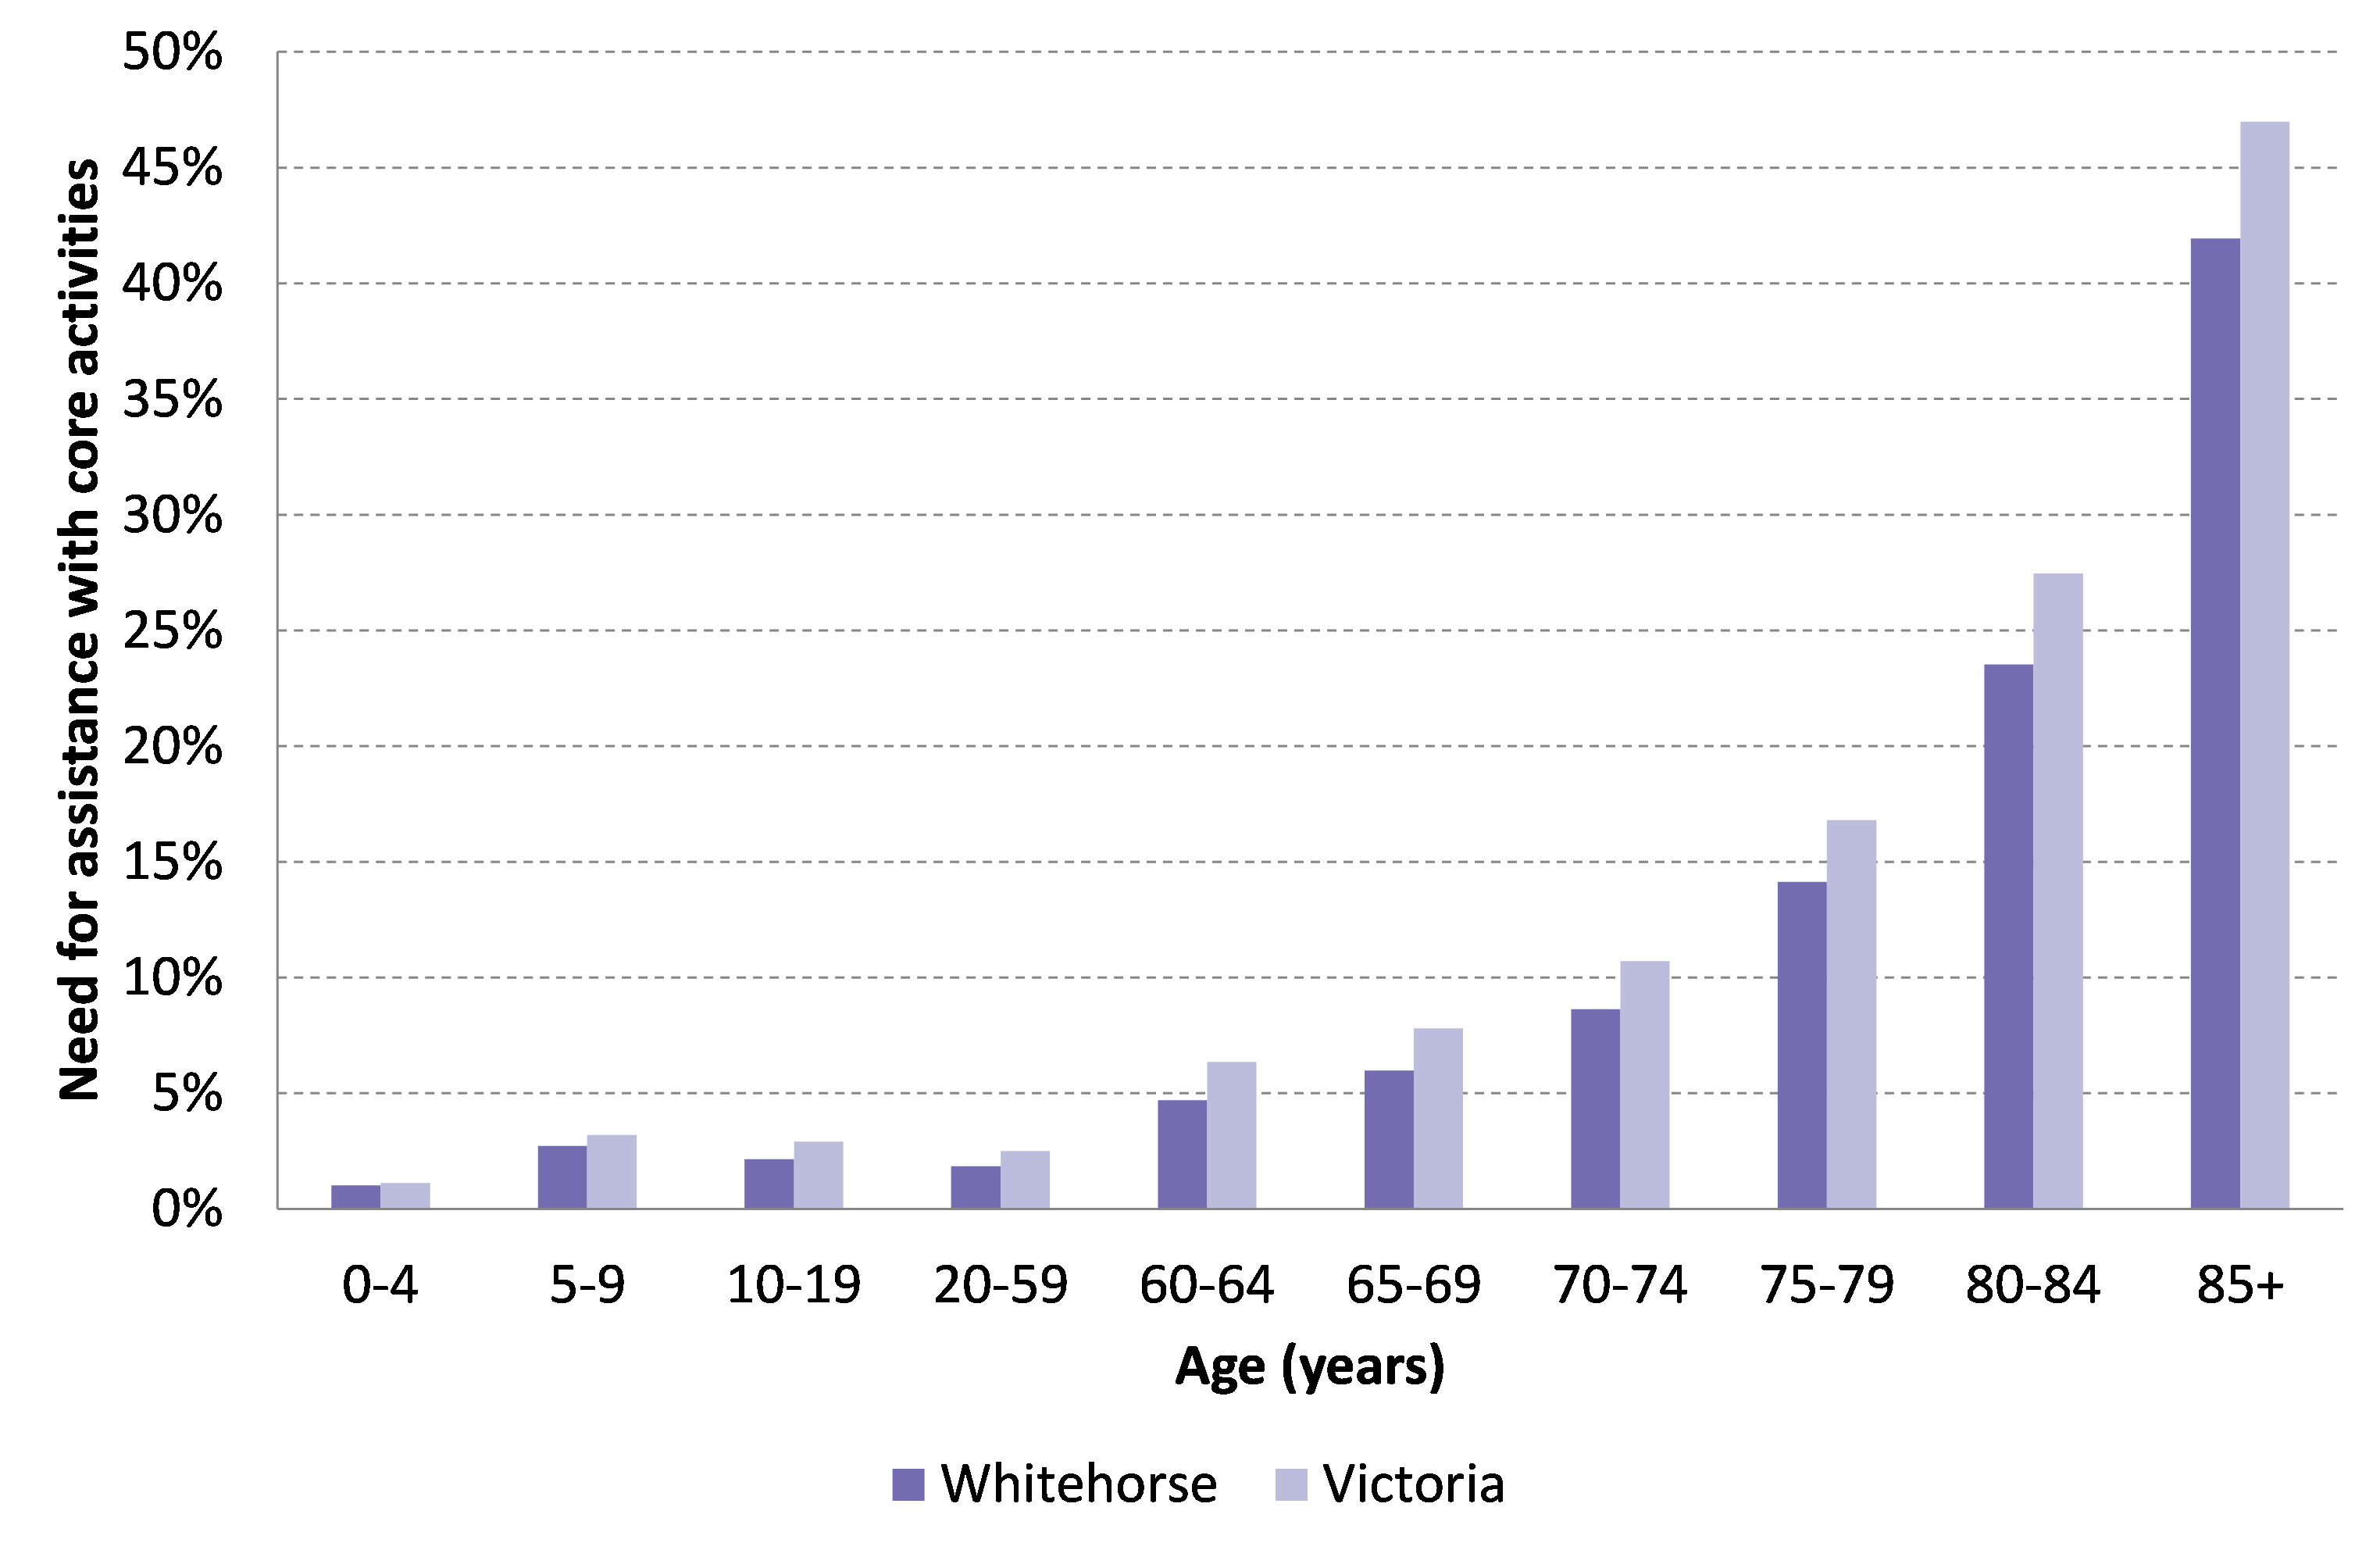 Figure 1 Percentage of disability by age group in Whitehorse and Victoria